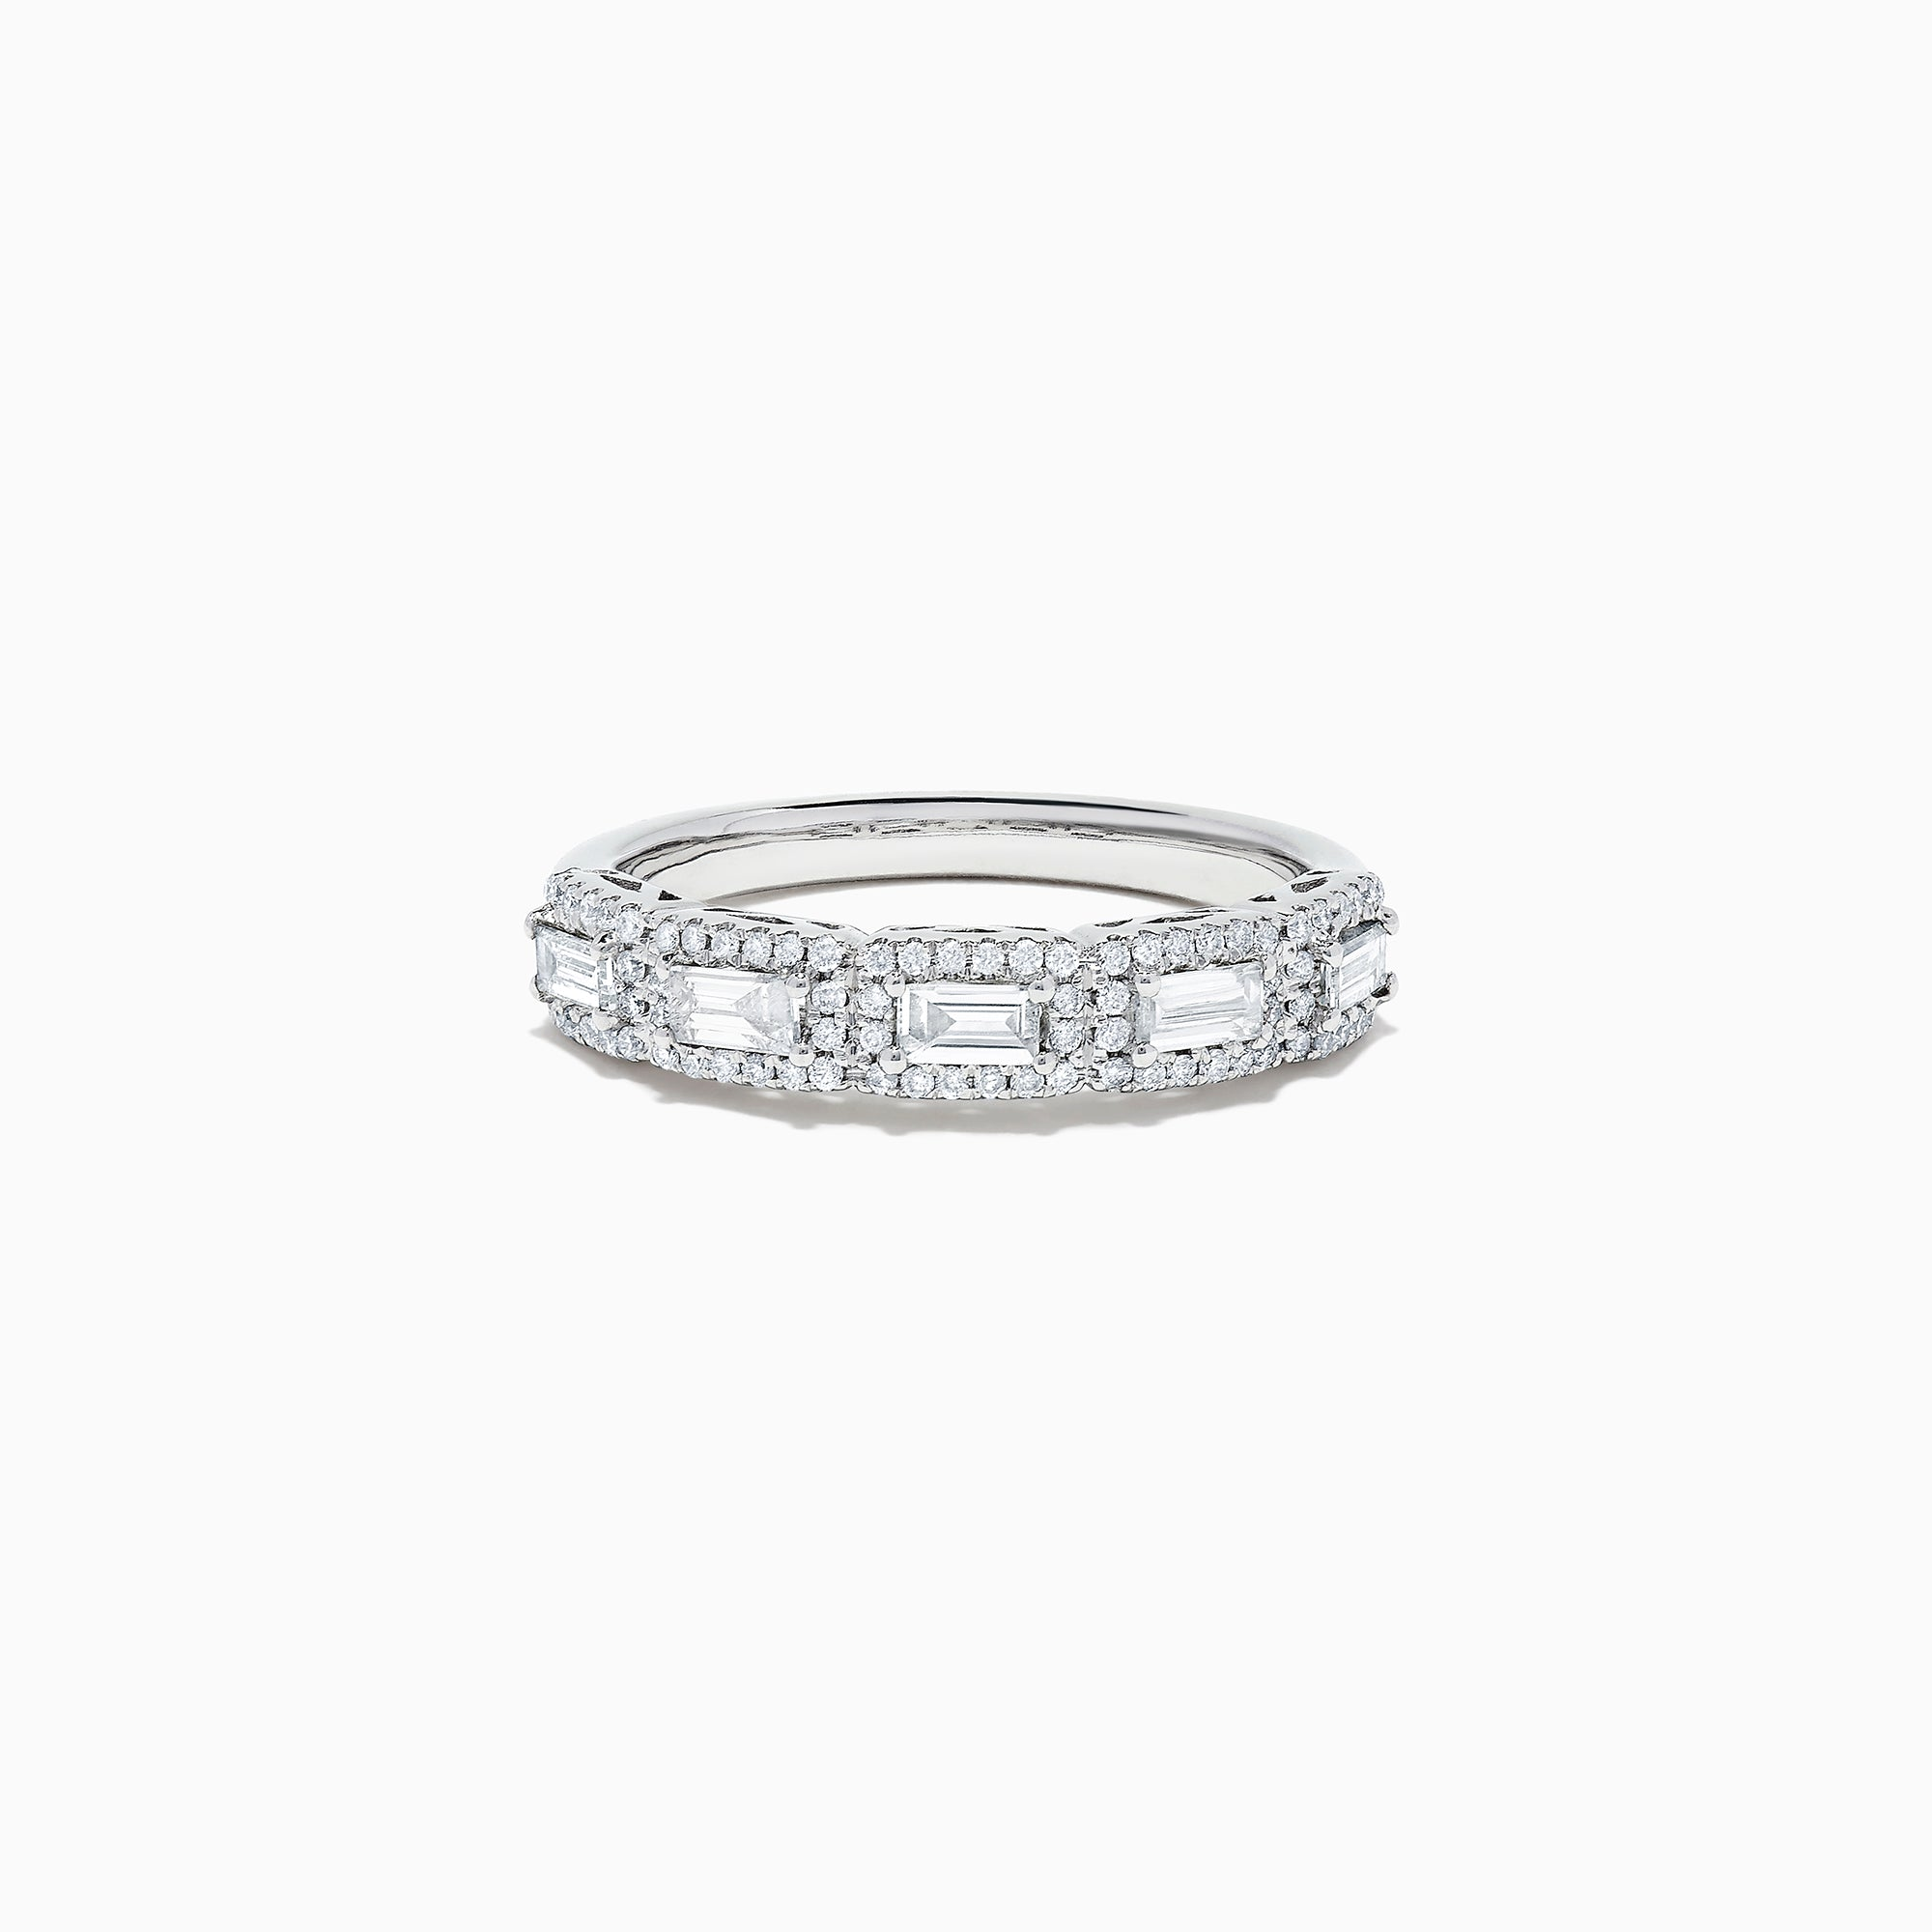 Effy Classique 14K White Gold Diamond Ring, 0.55 TCW